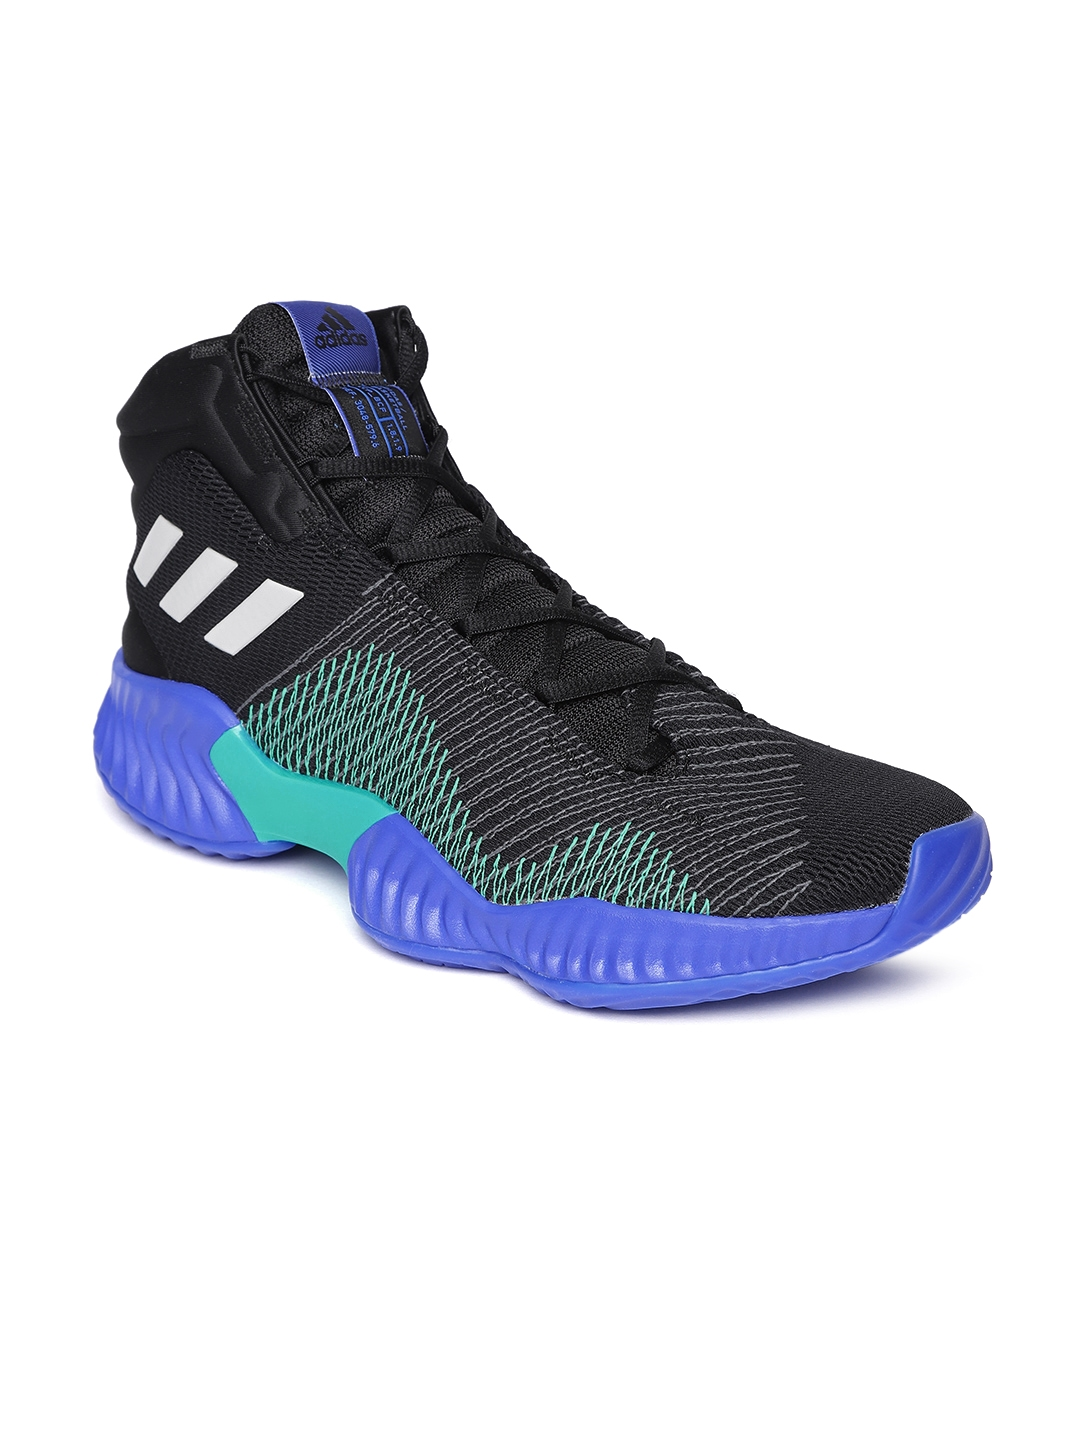 dda98c4a2ee66 Buy ADIDAS Men Black   Blue Pro Bounce 2018 Mid Top Basketball Shoes ...